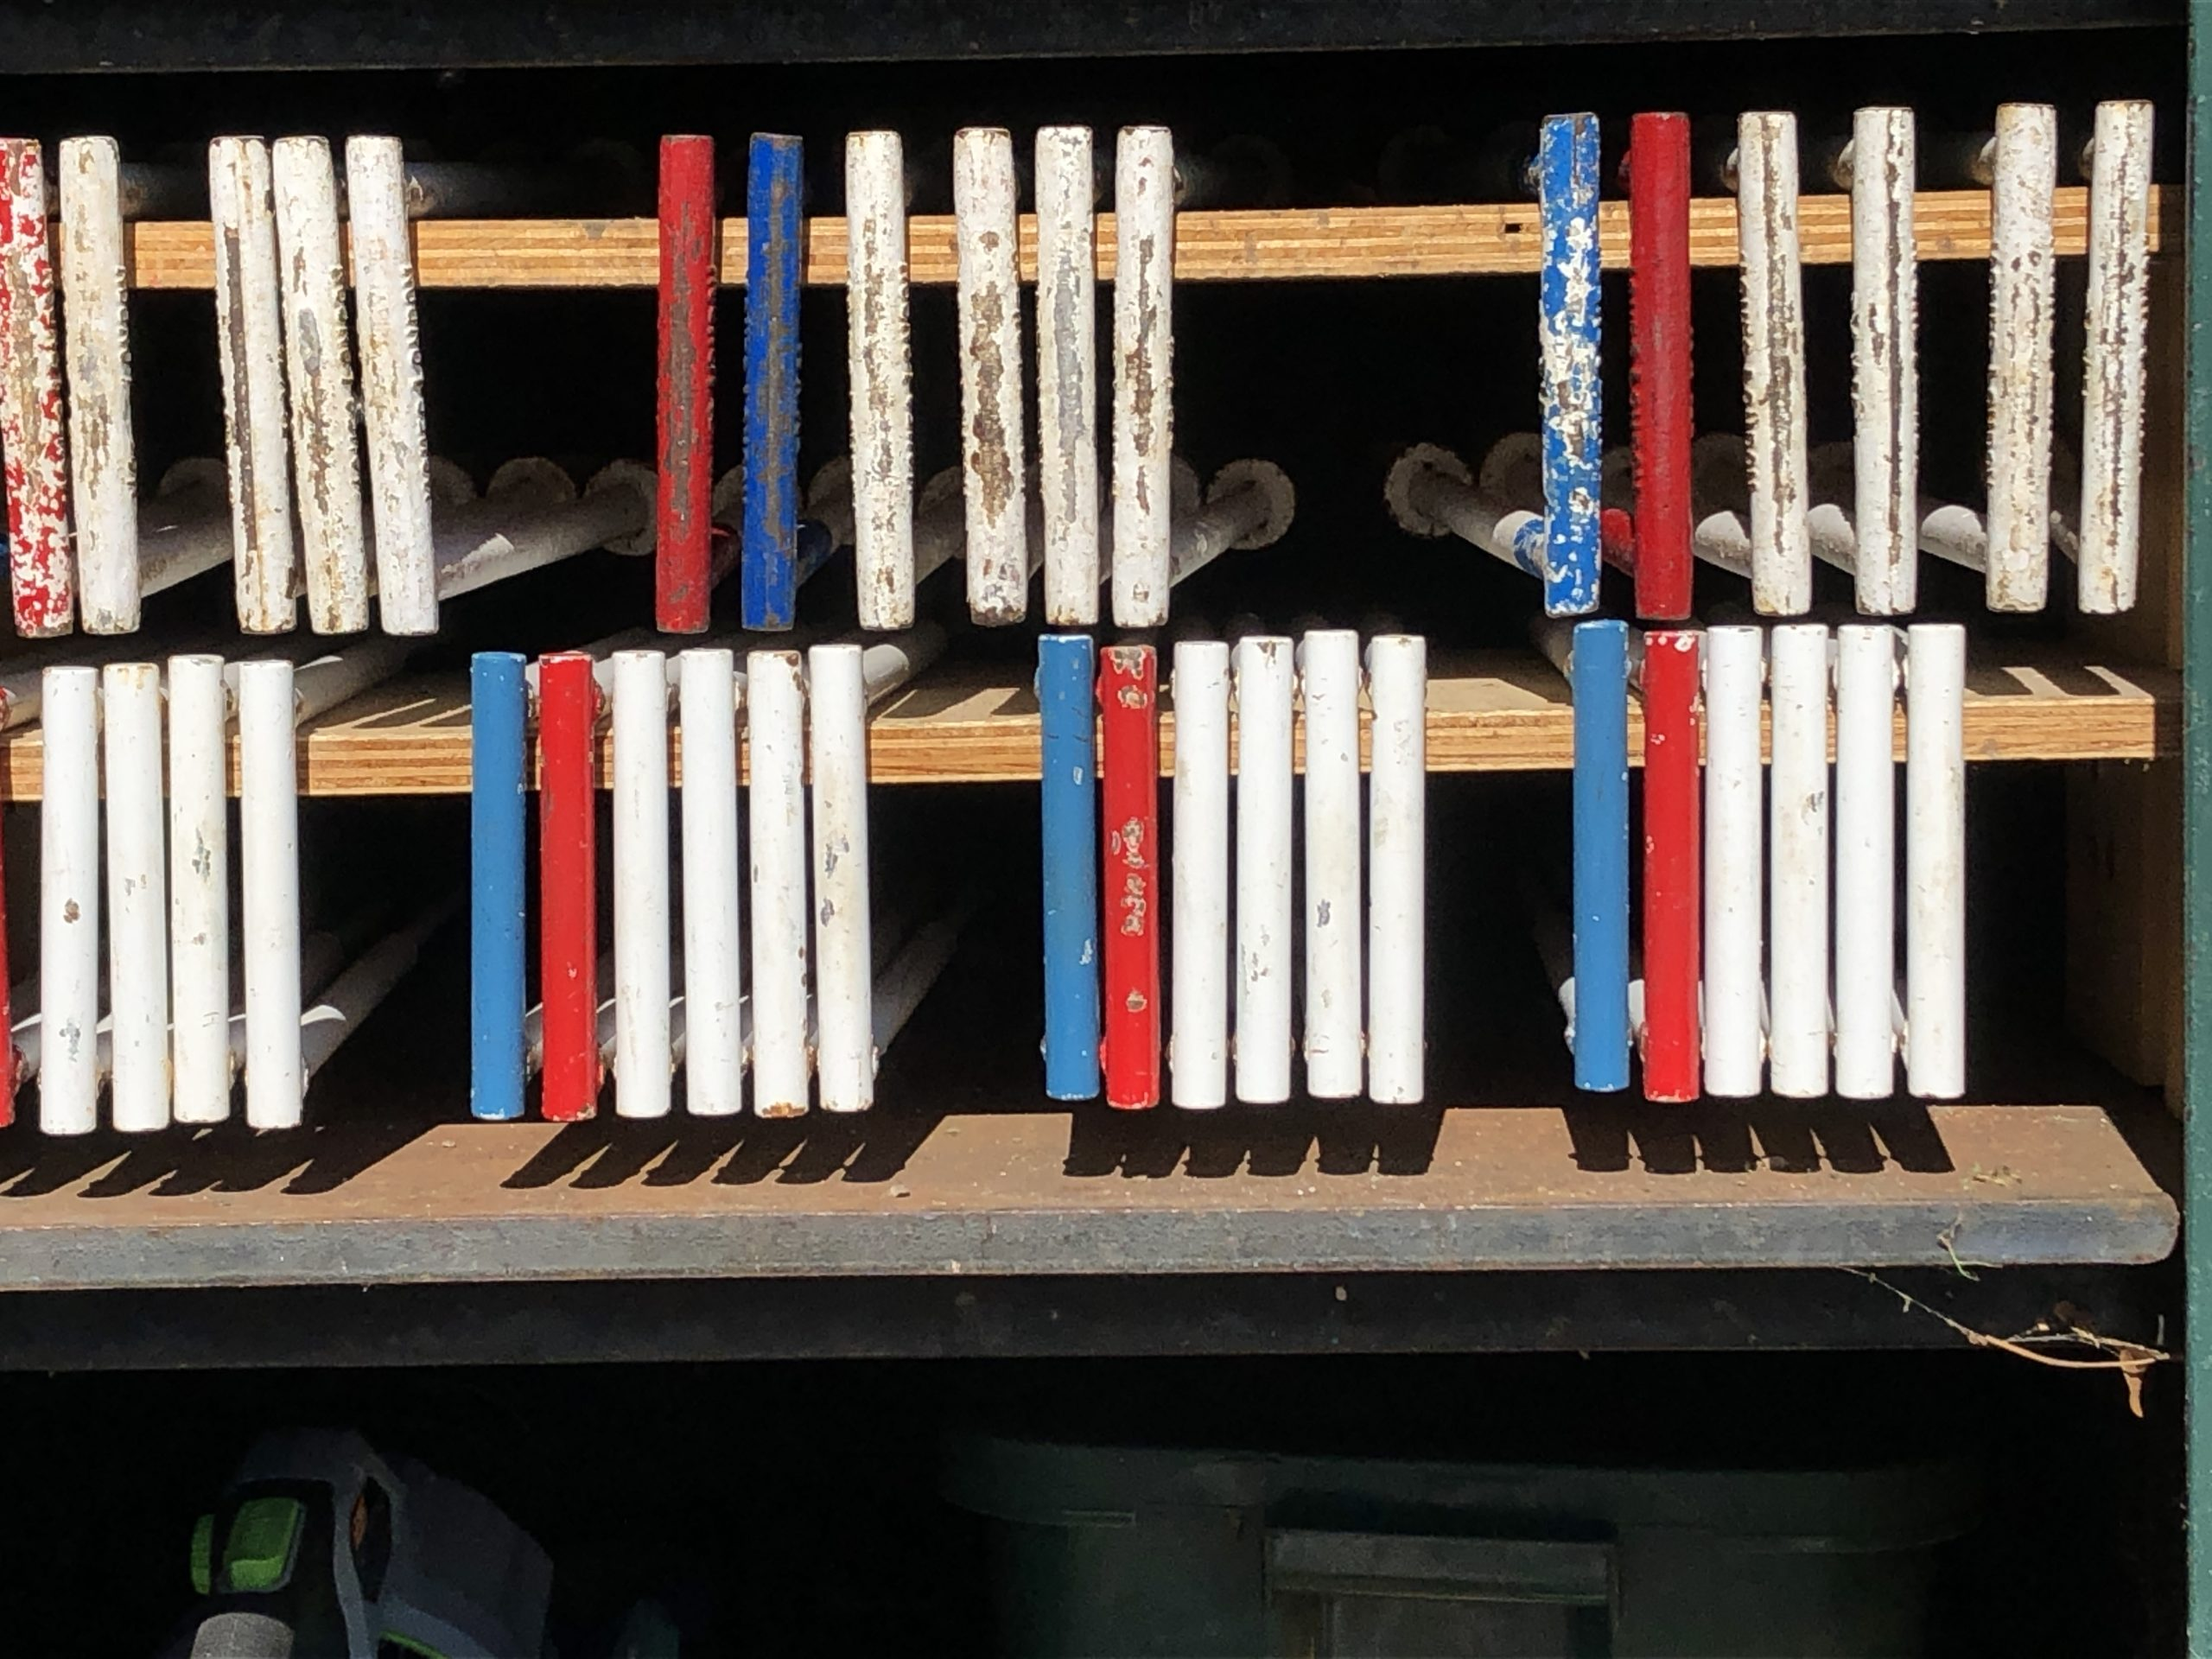 Wickets in a row